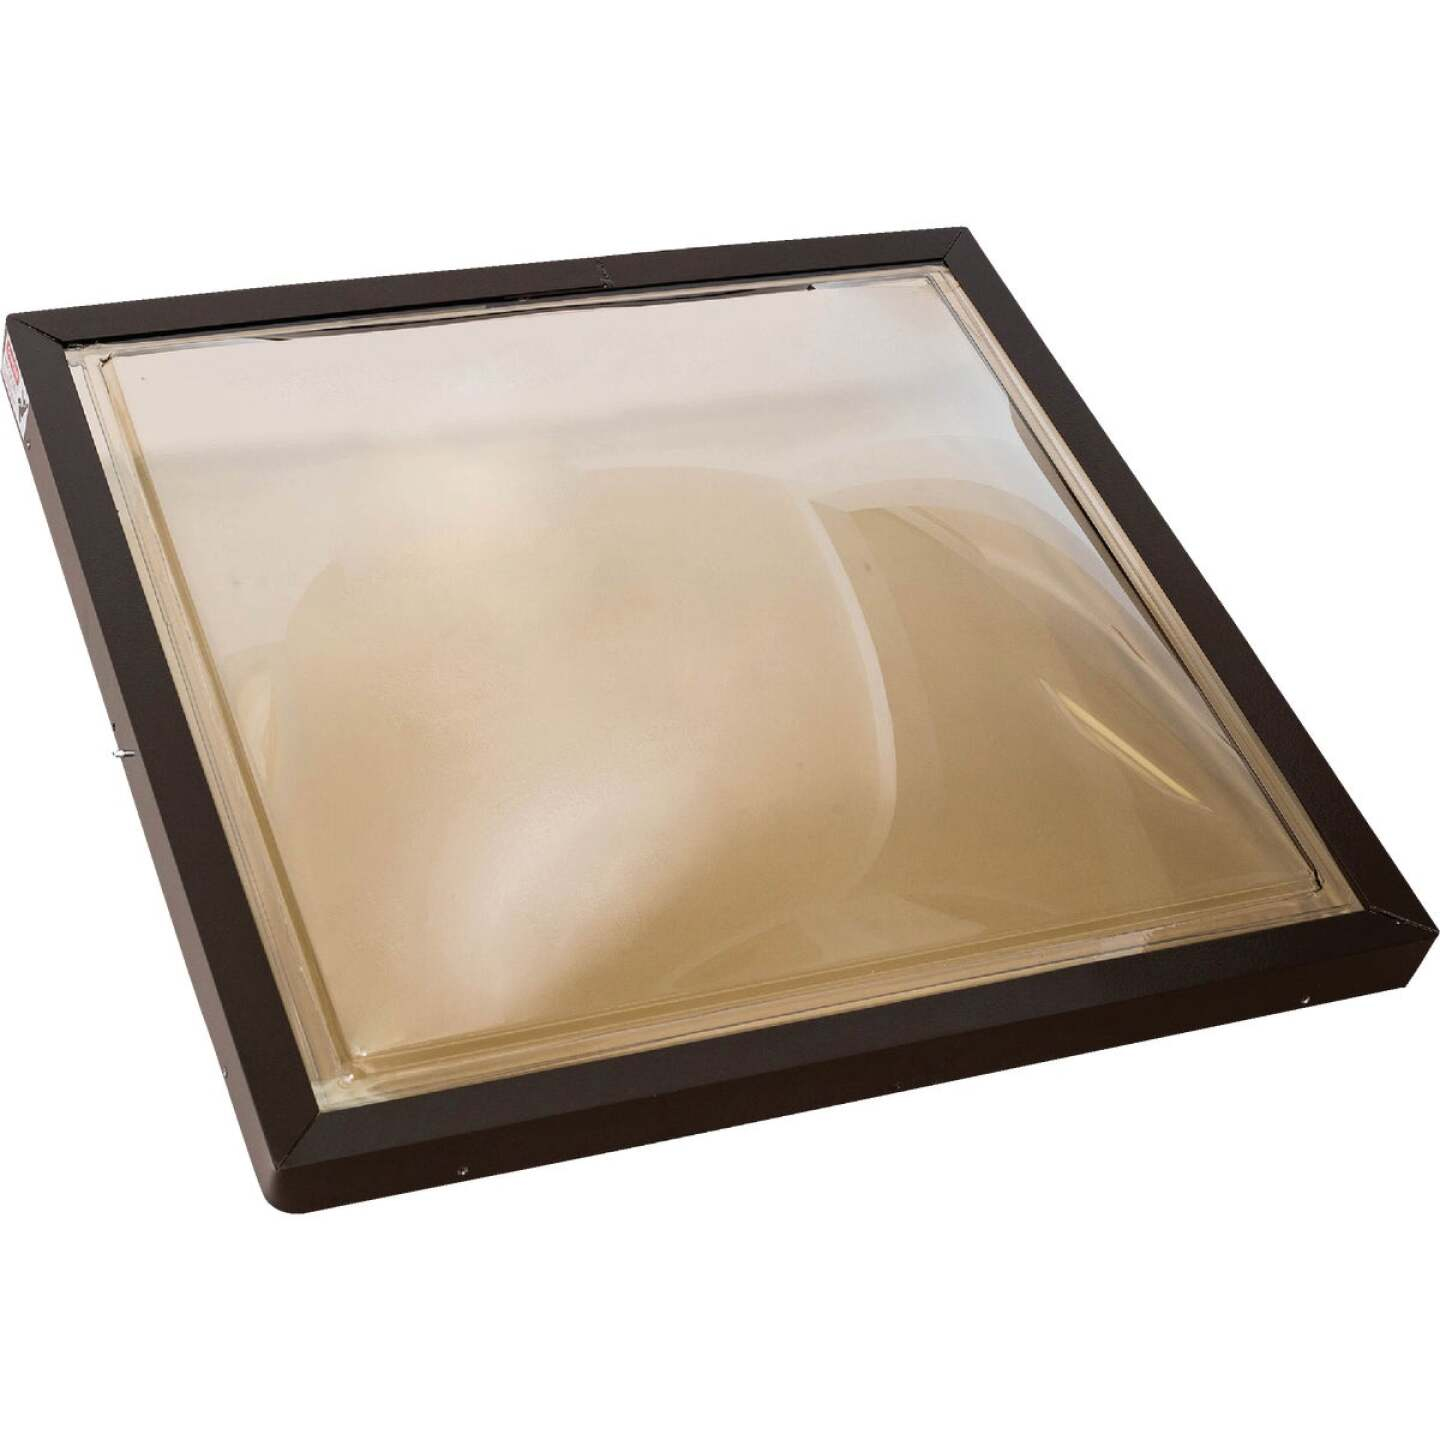 Kennedy Skylights 24 In. x 24 In. Bronze Aluminum Frame Curb Mount Skylight Image 1